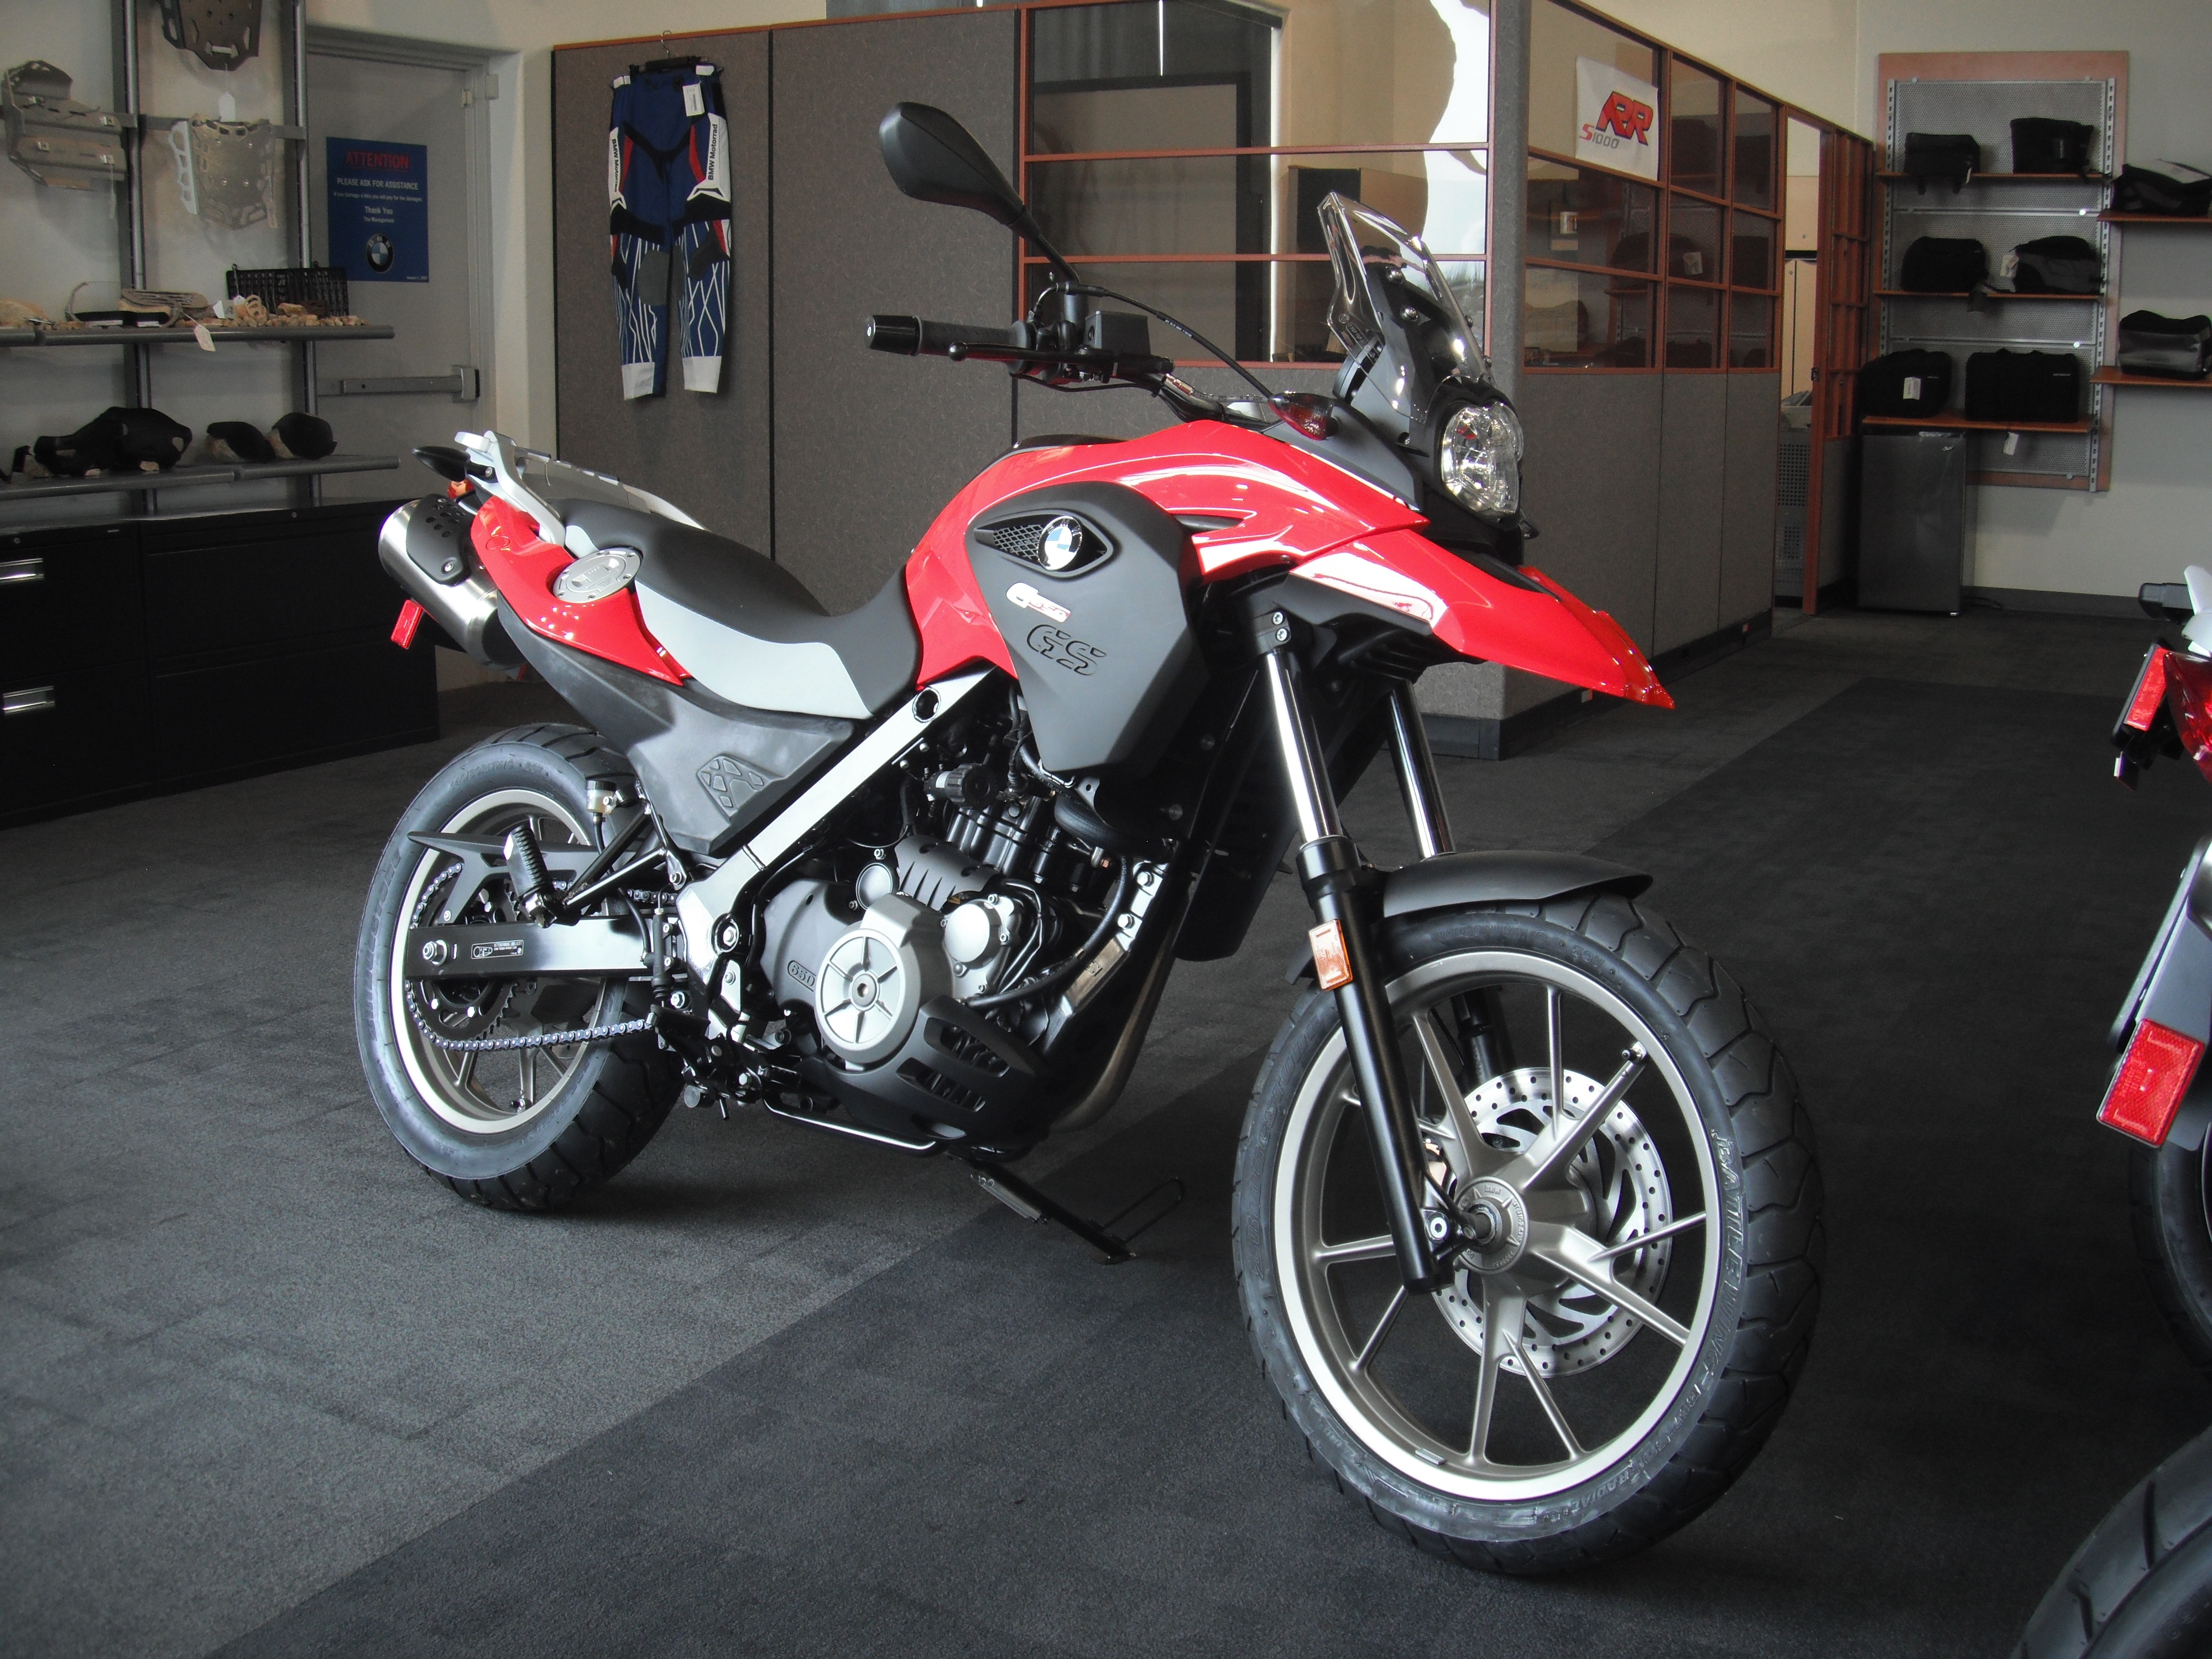 BMW G 650 GS 2011 images #8387